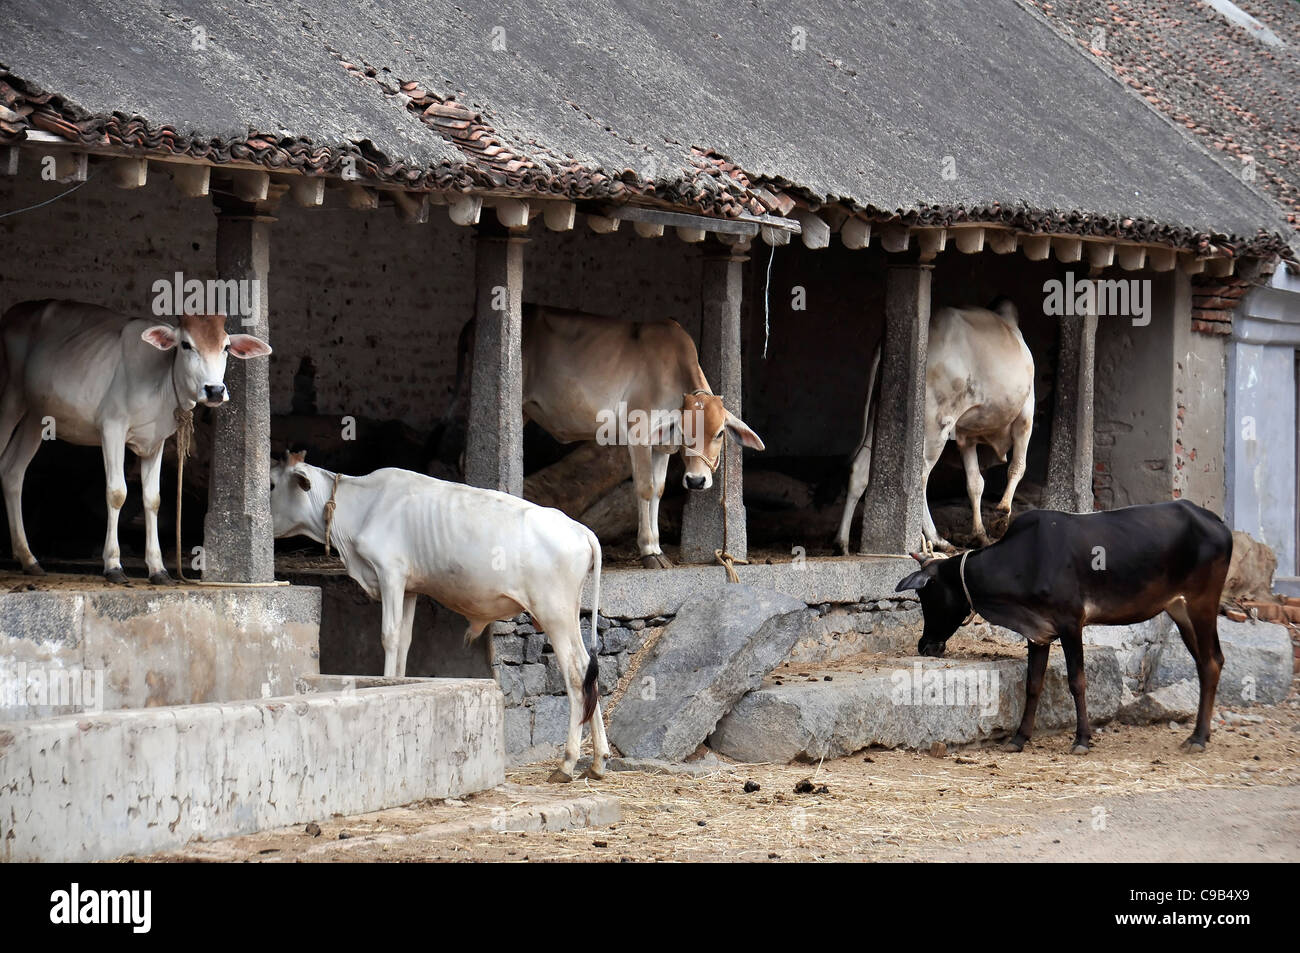 cows animal cattle cowshed shed shelter rural india stock photo